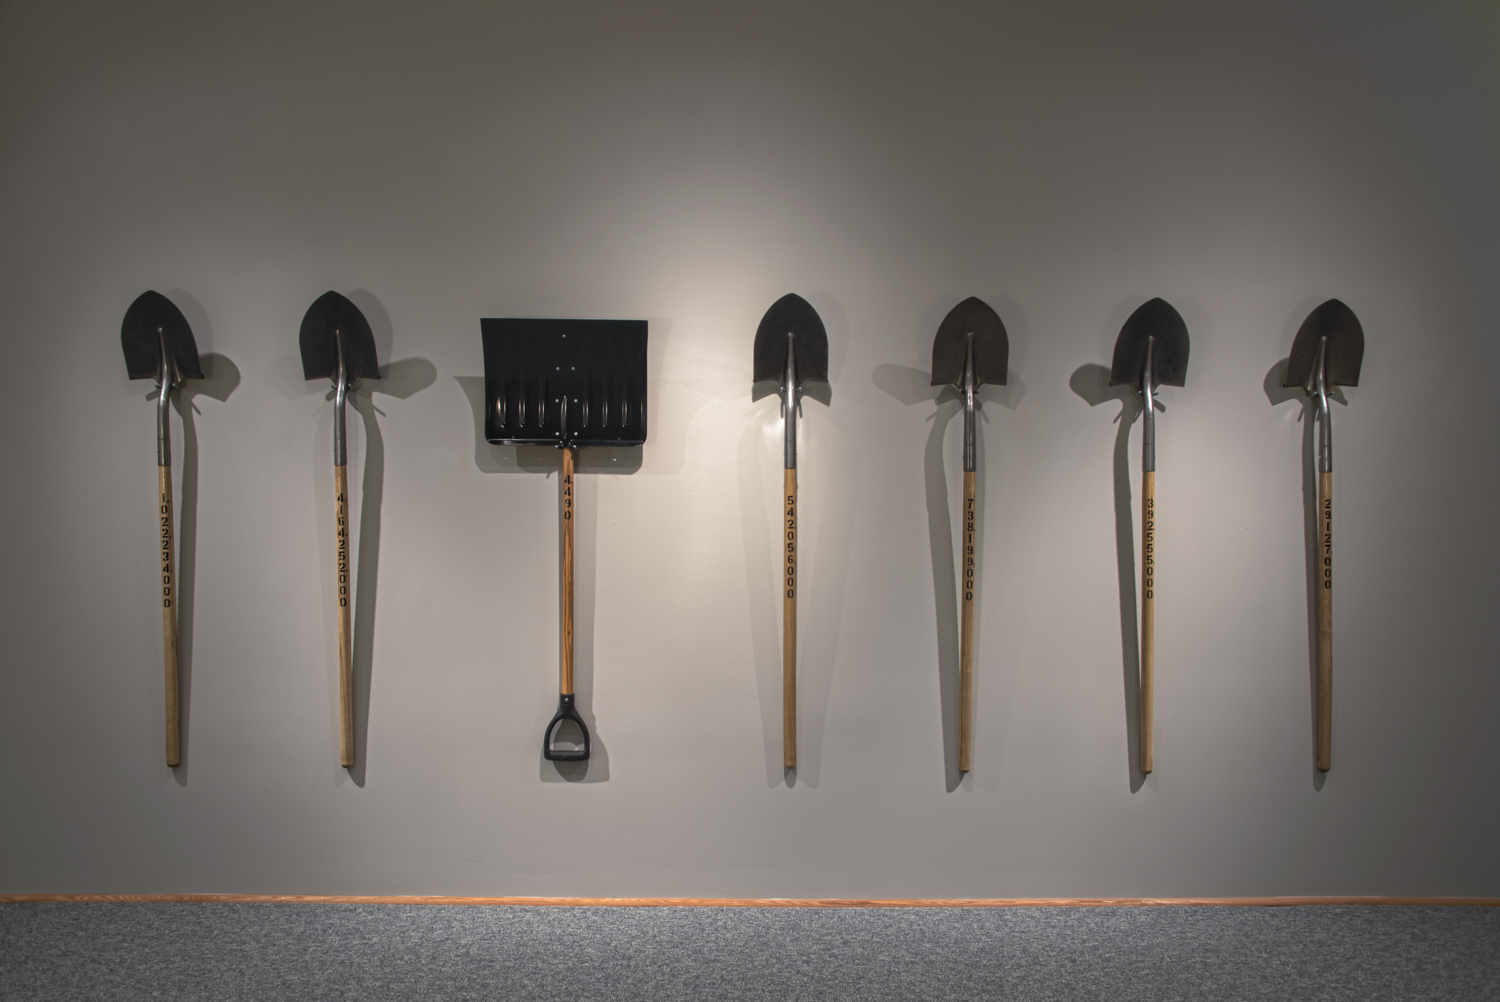 Readymade Shovels with Enamel Paint                                                                                       53 ½  x 8 ½x 1   ½  in   136 x 21.6 x 3.8 cm                                                                                                                  2016